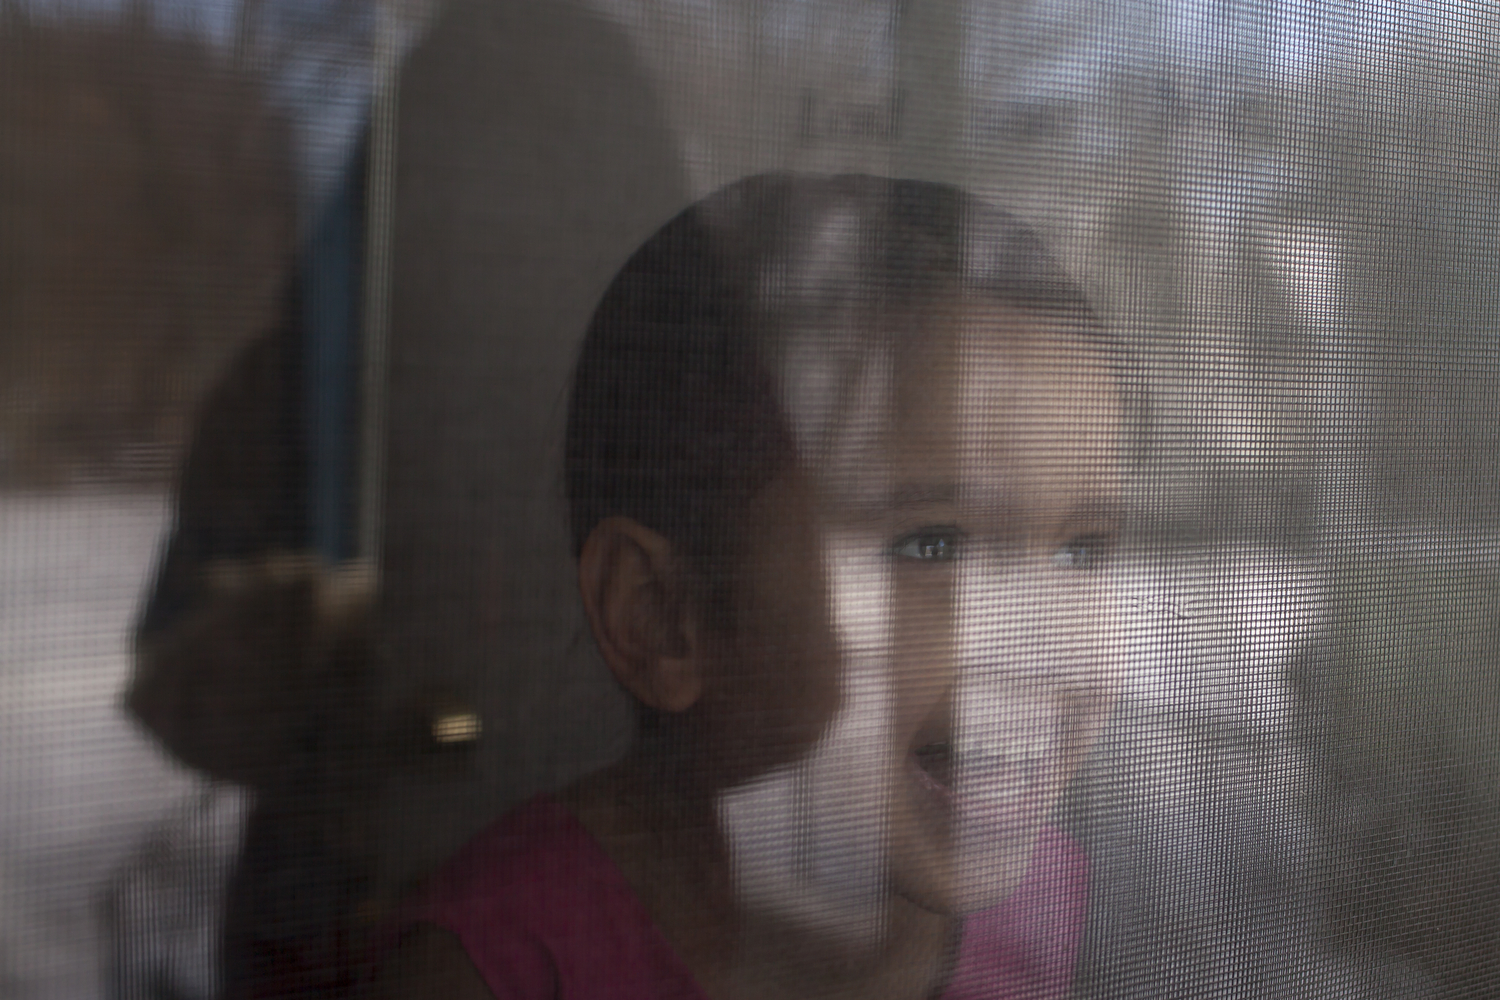 Yarieliz Flores, 3, surprises her mom, Jenismat Flores, 26, through the screen door, Rochester, N.Y., Mar. 22, 2015.